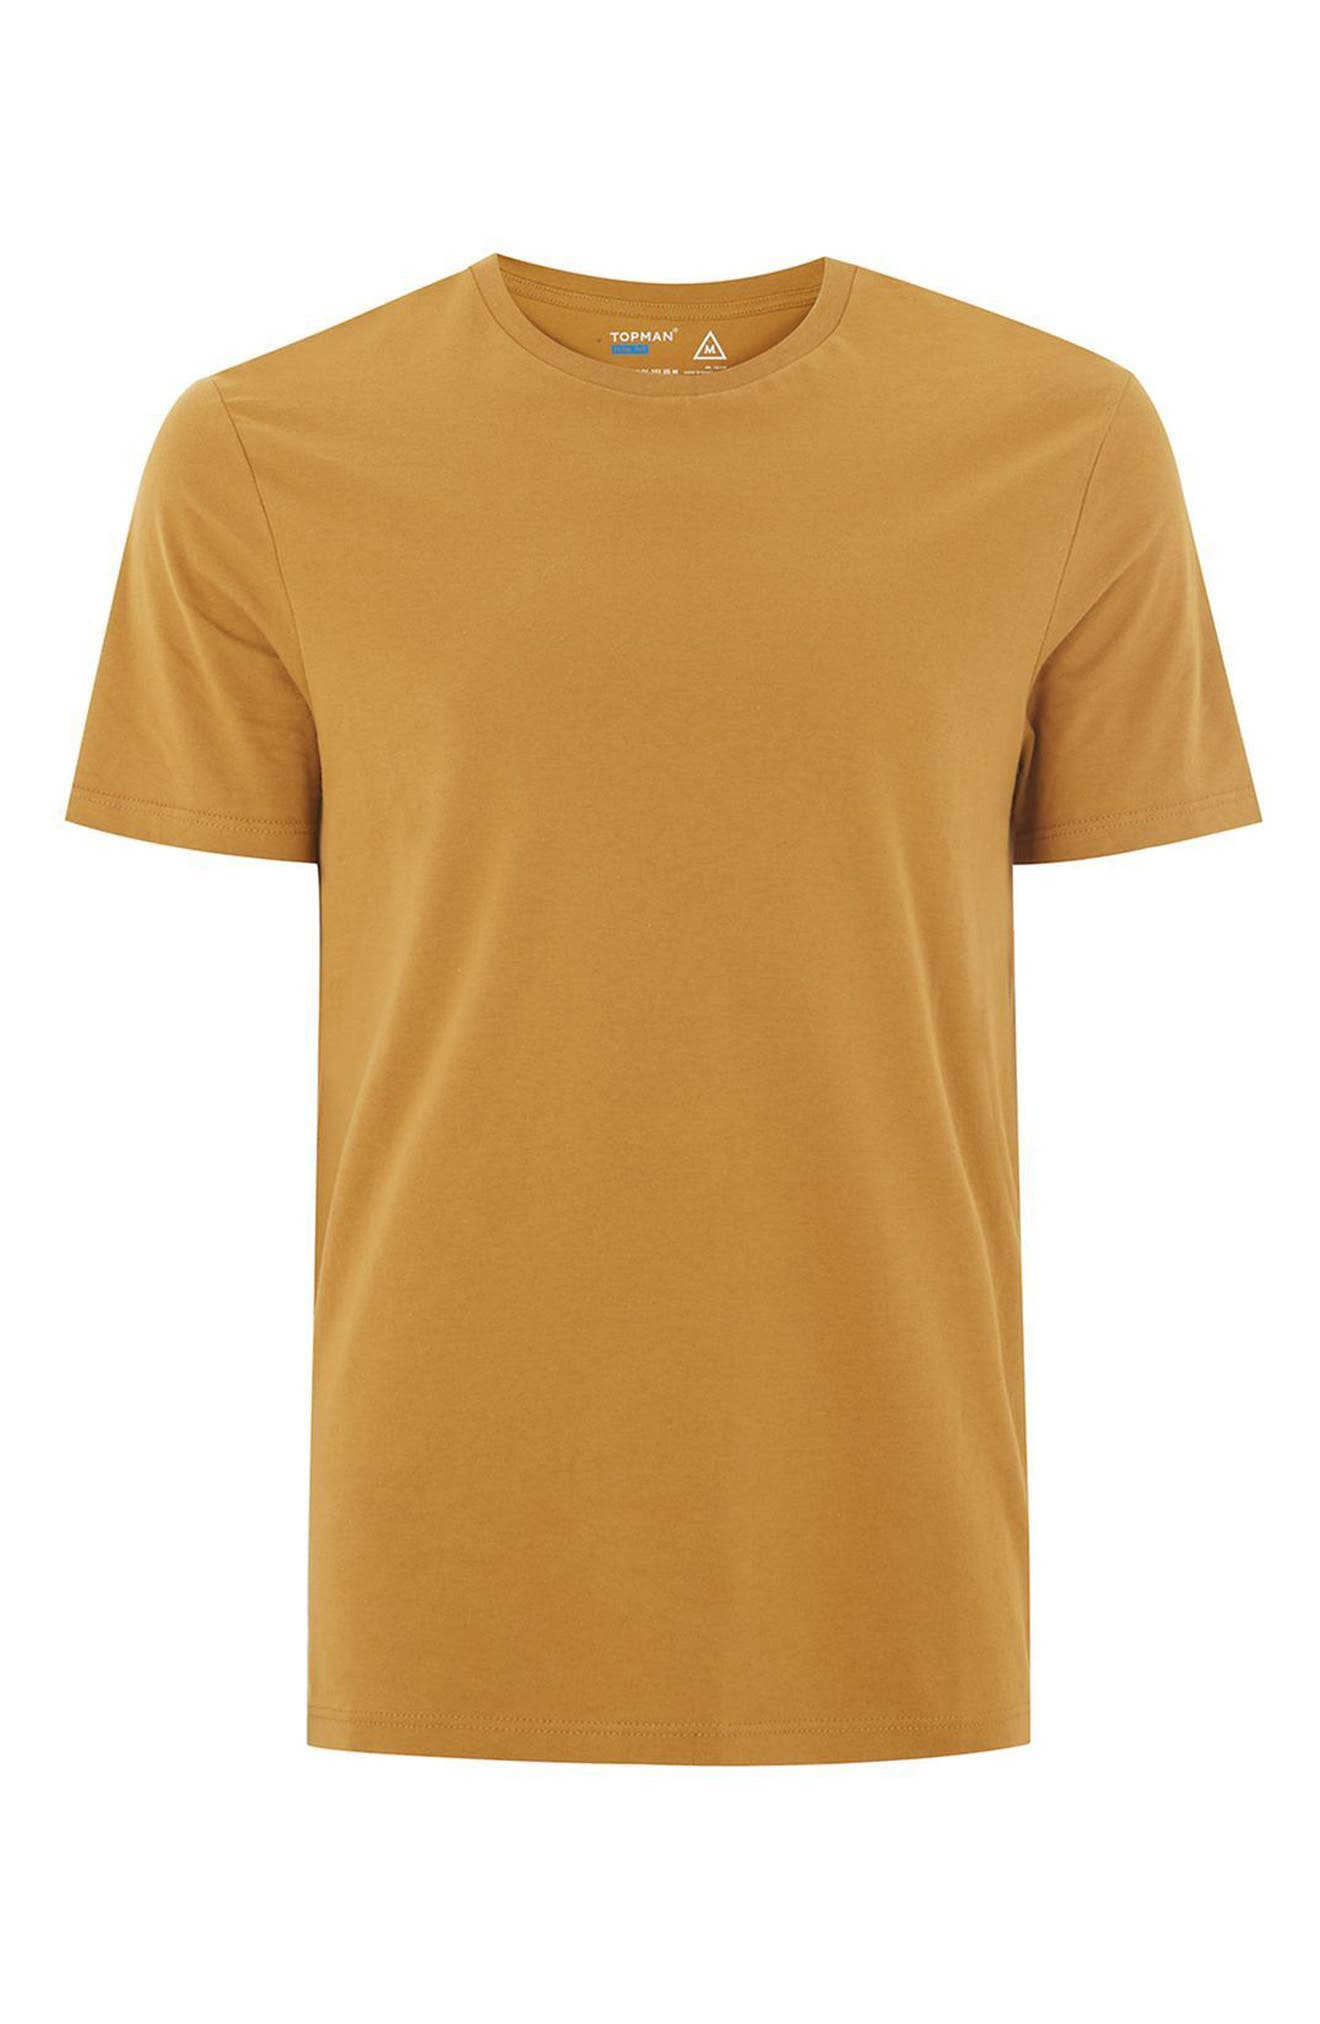 Slim Fit Crewneck T-Shirt,                             Alternate thumbnail 4, color,                             Mustard